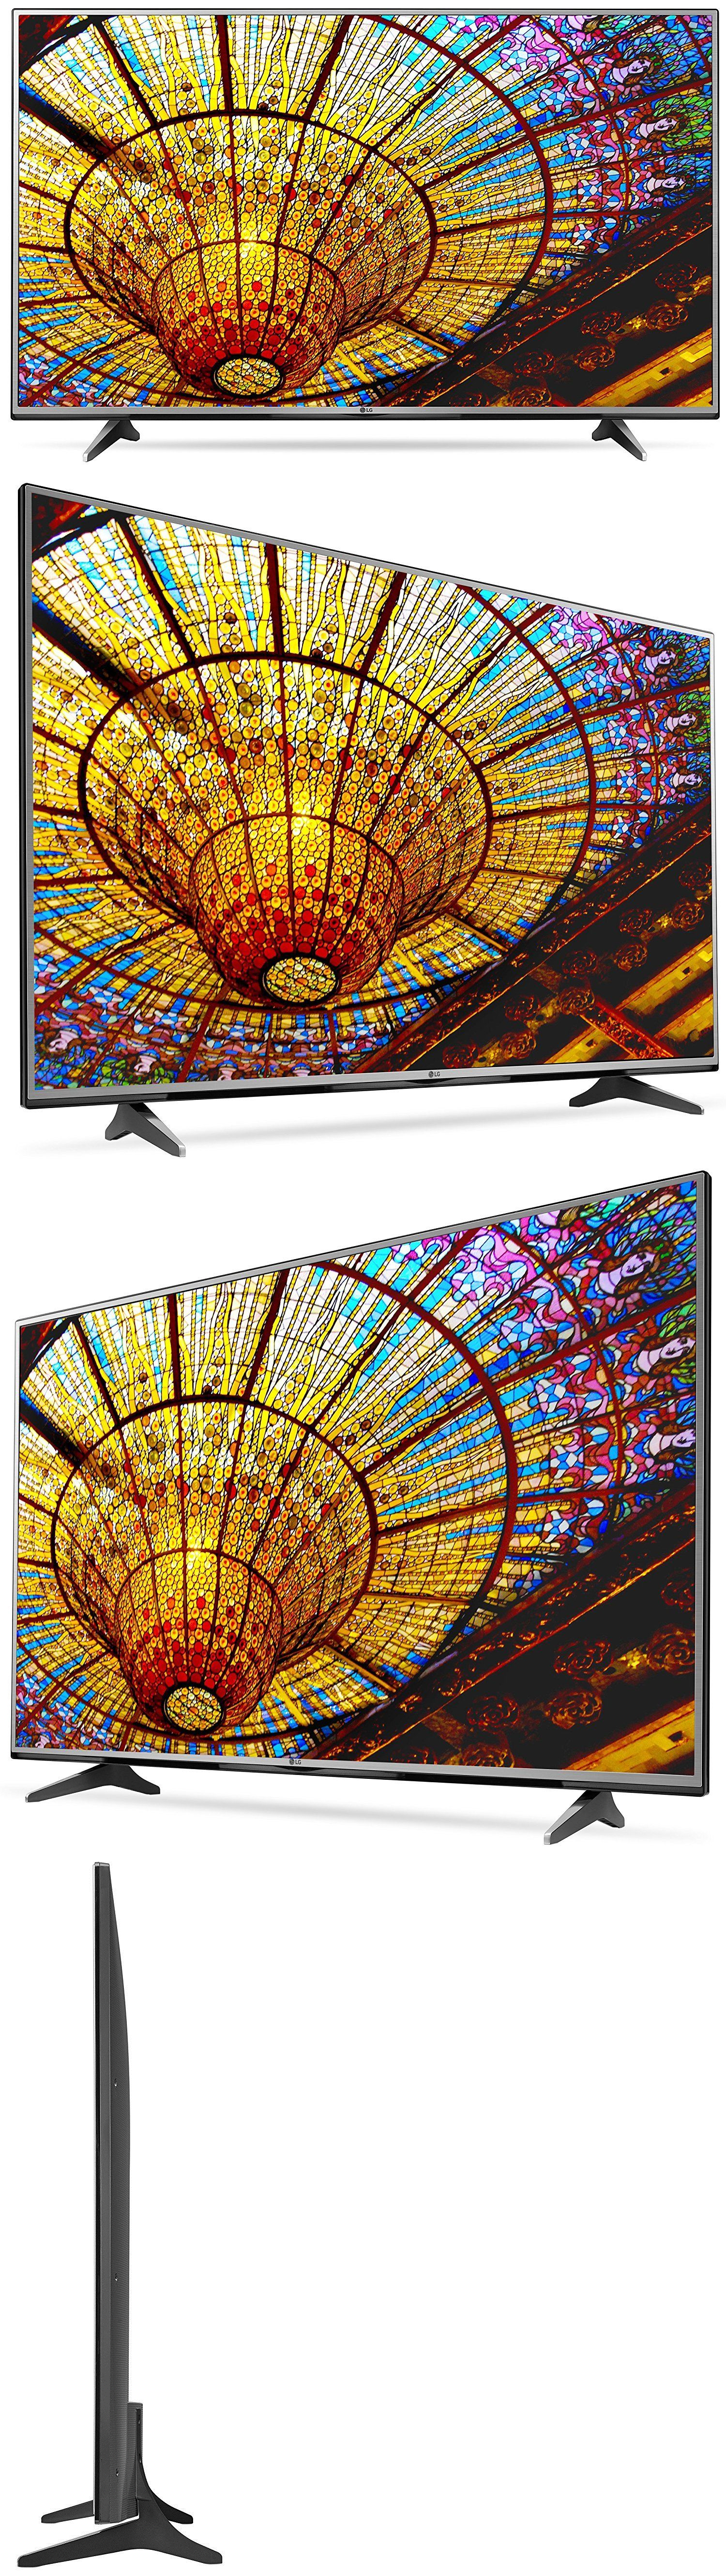 Smart TV: Lg 55 Inch 4K Ultra Hd Smart Tv 55Uh6150 Uhd Tv Brand New -> BUY IT NOW ONLY: $574.95 on eBay!